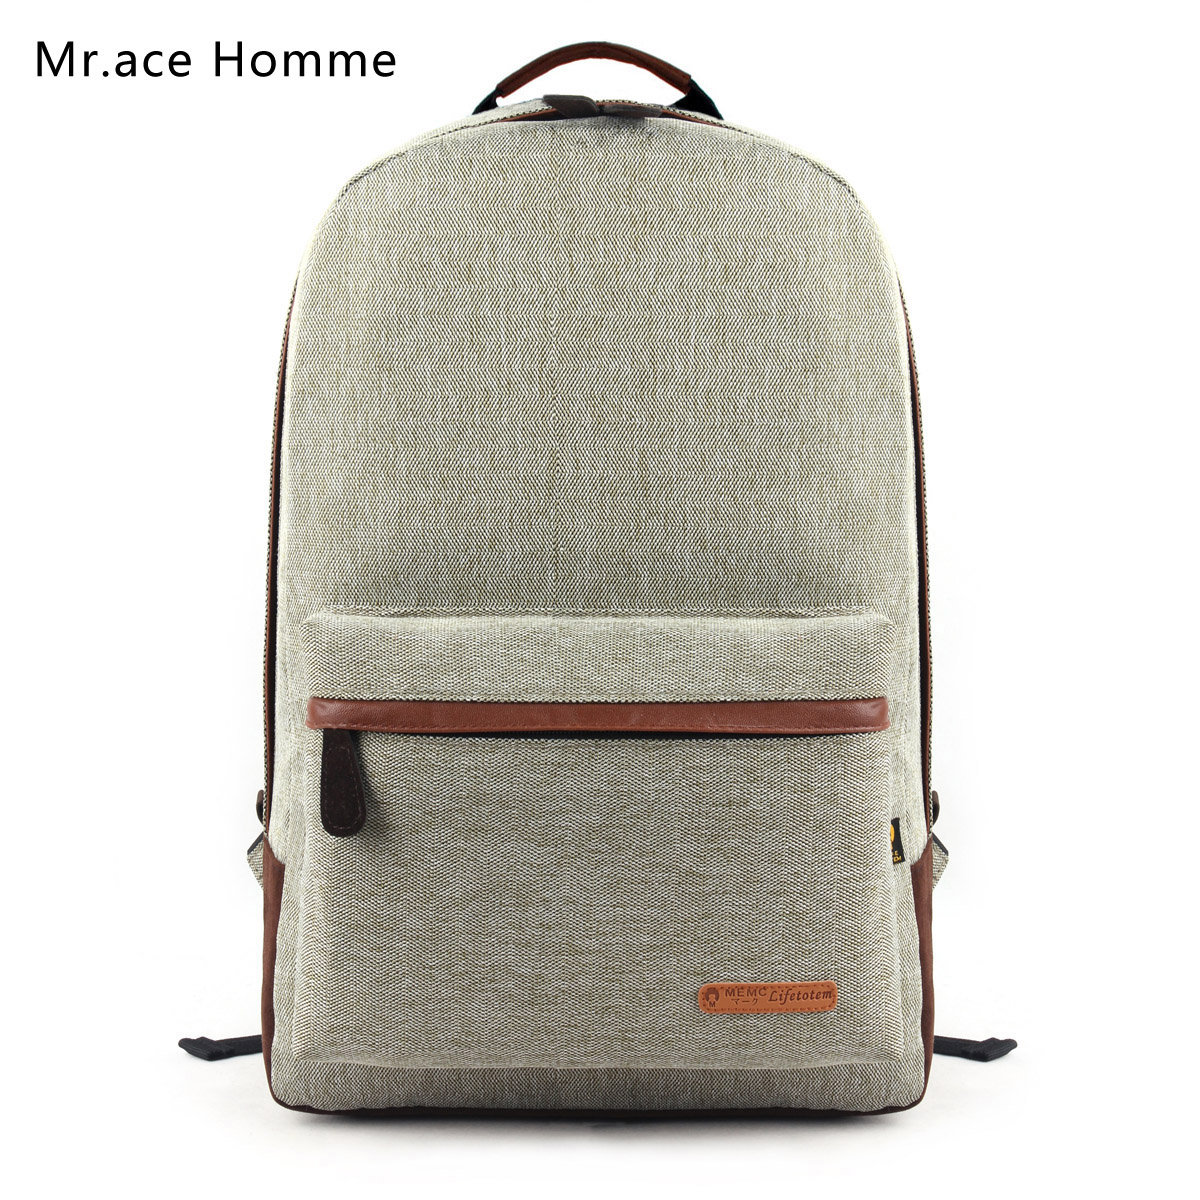 Designer Laptop Backpacks For Women - Crazy Backpacks